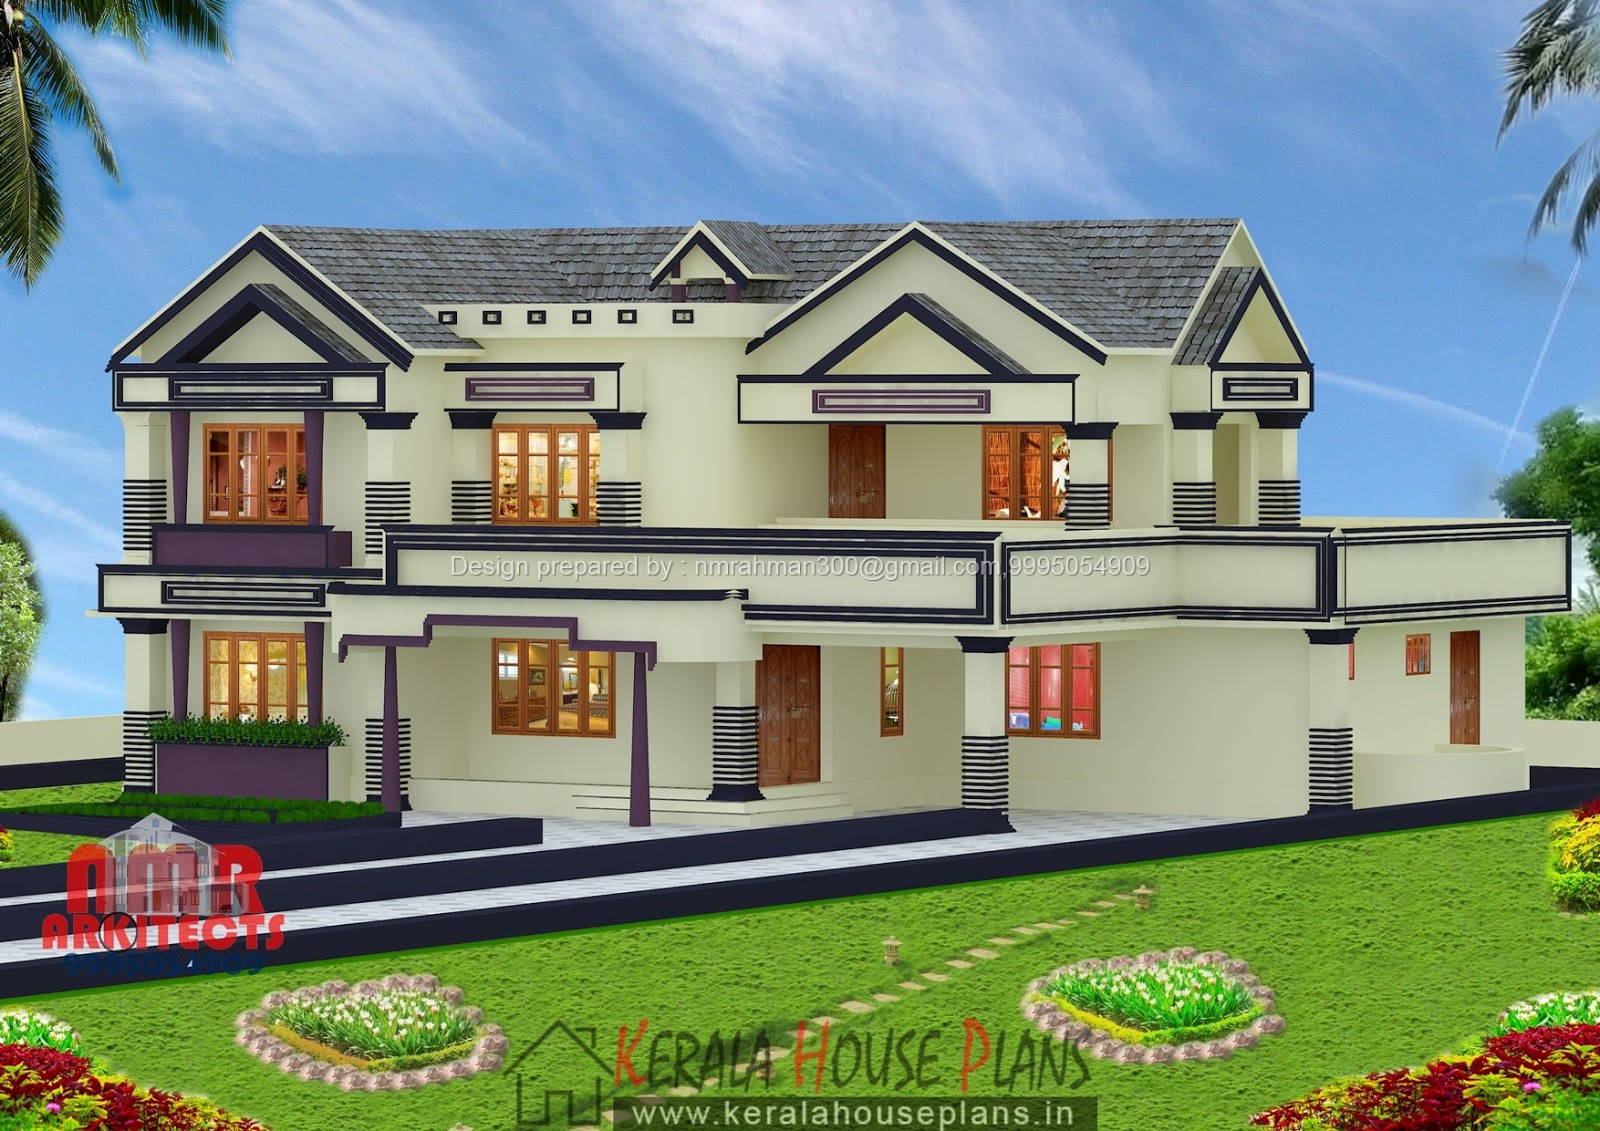 Kerala house plans above 3000 sq ft kerala house plans for 3000 square feet home plans